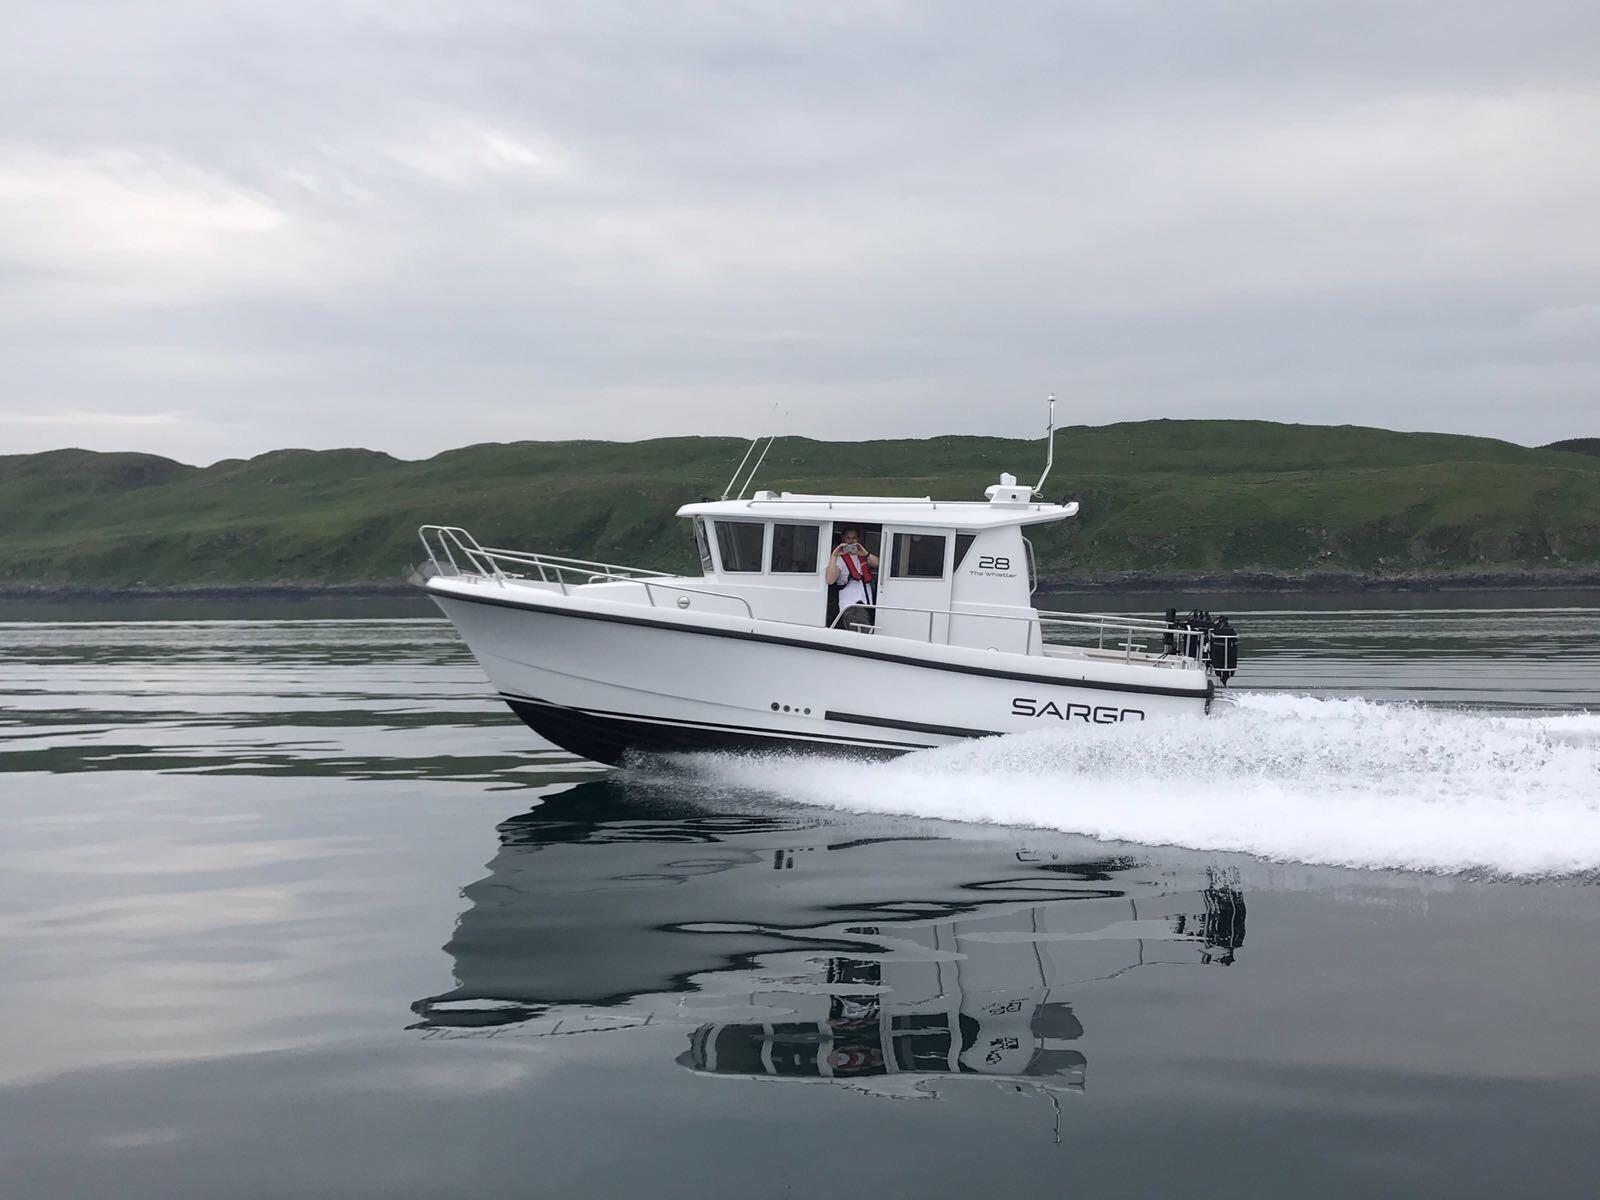 Sargo 28 - on the water